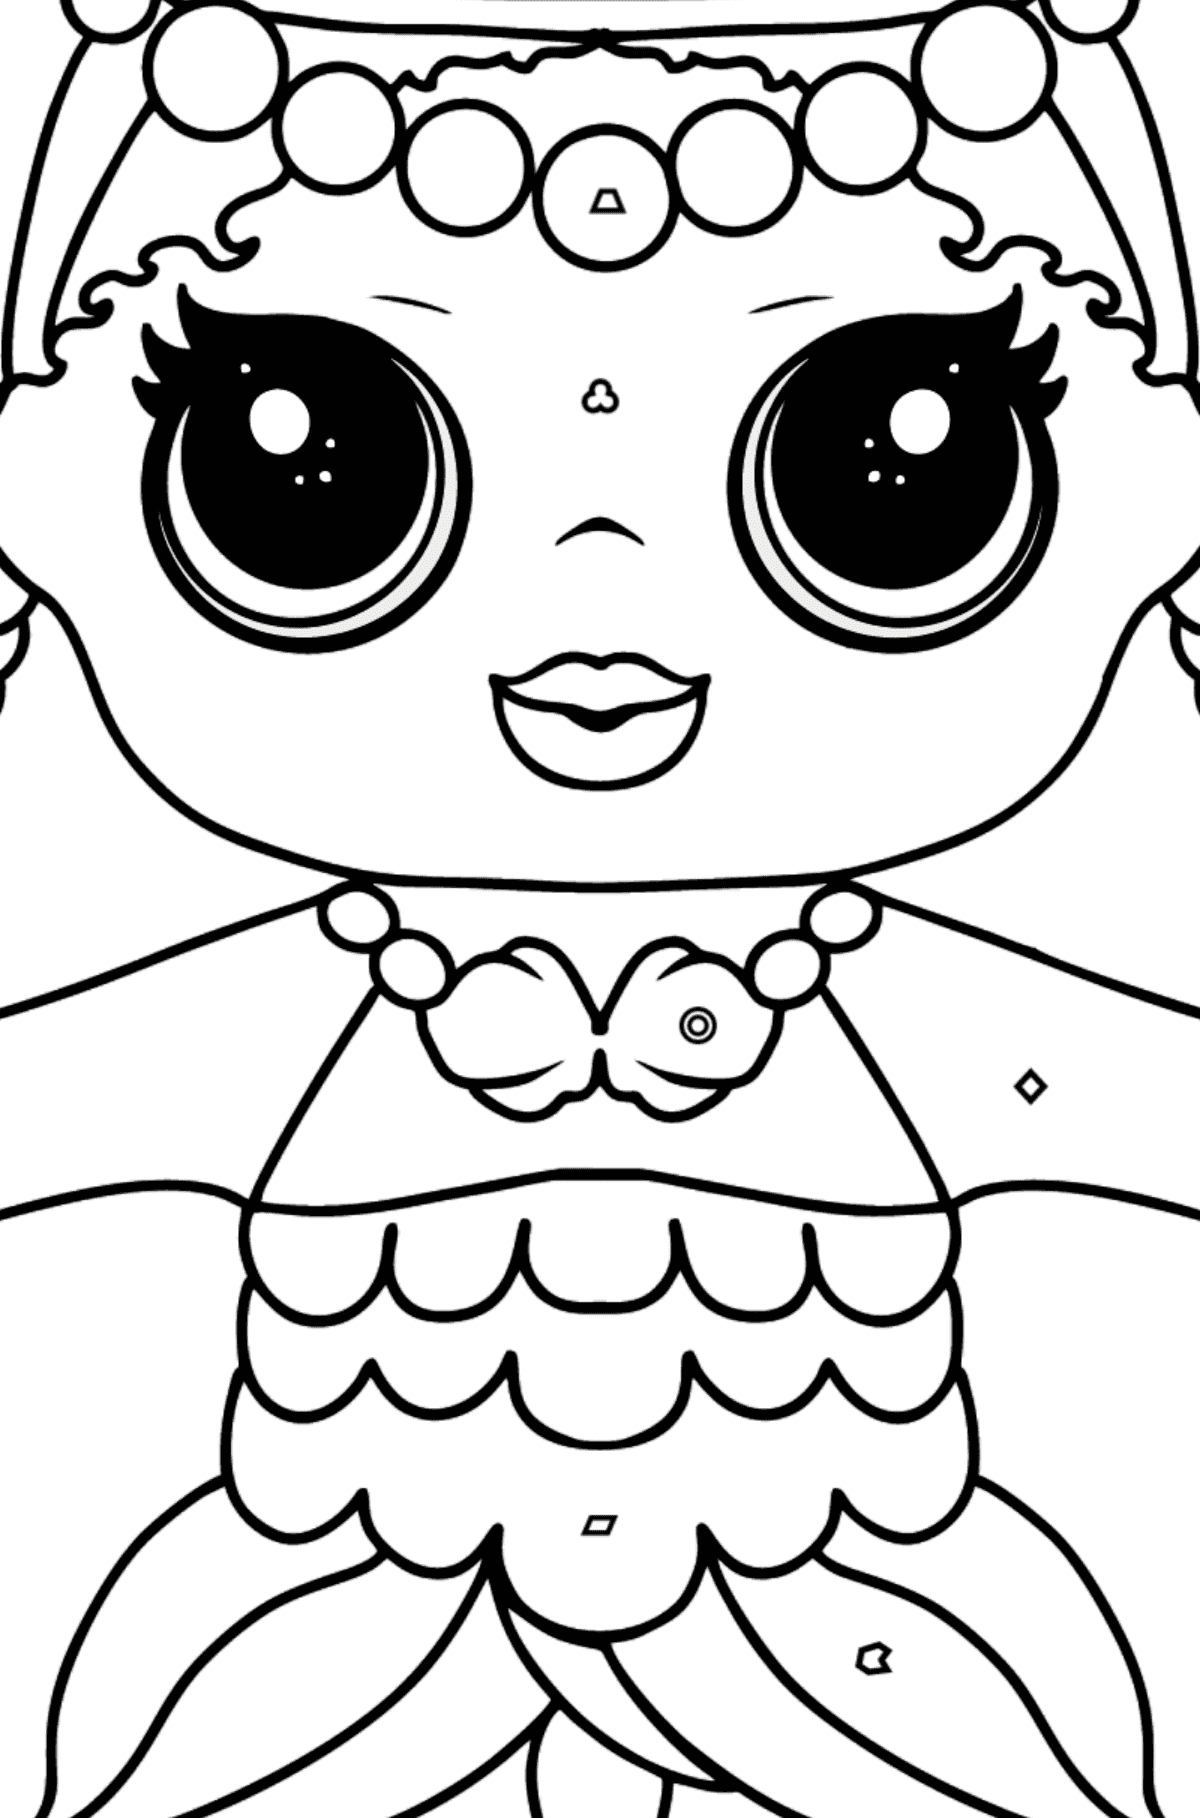 L.O.L. Surprise Doll Merbaby - Coloring by Geometric Shapes for Kids